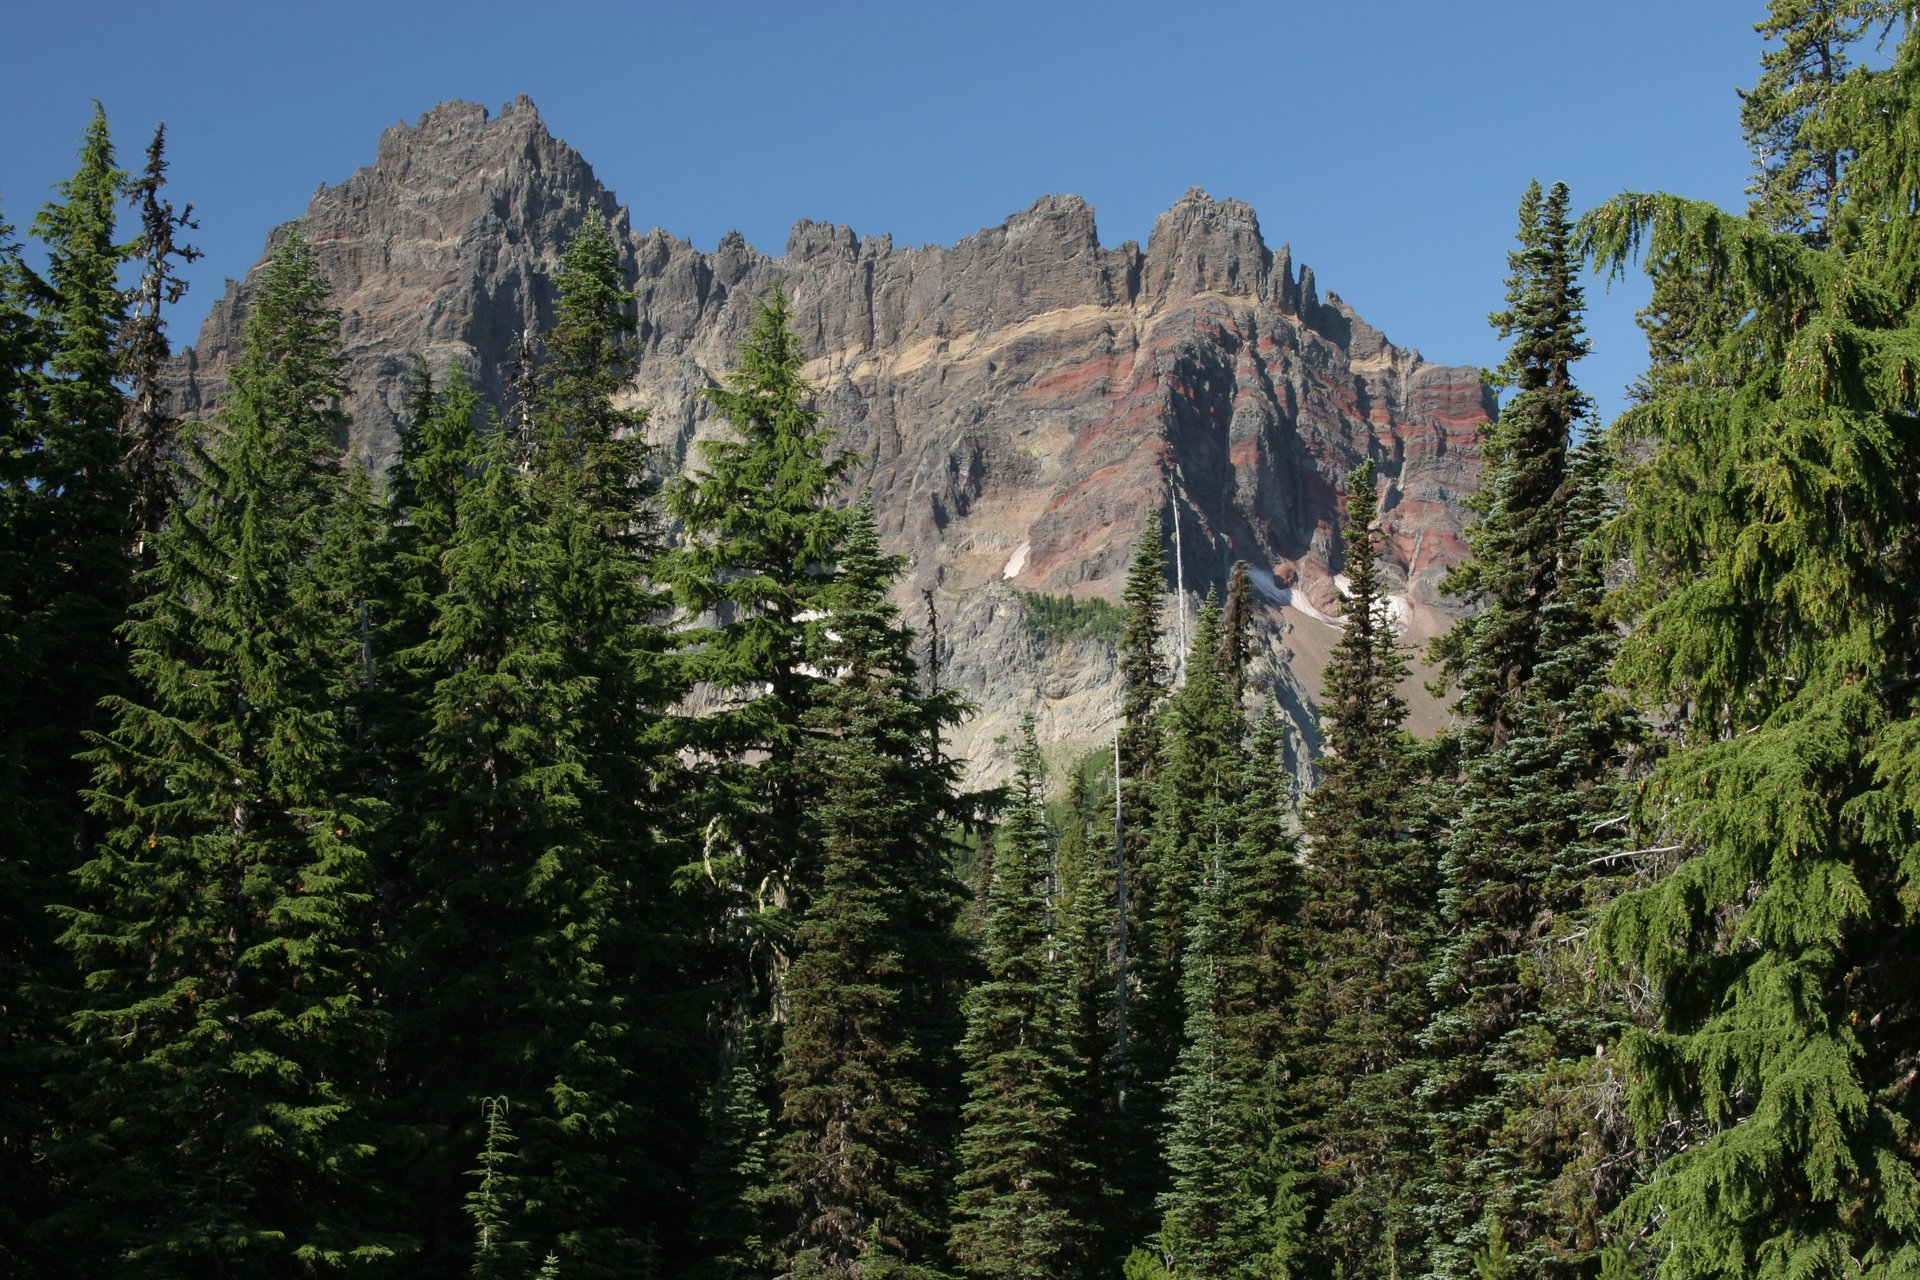 View of Three Fingered Jack from the Pacific Crest Trail in the Mt Jefferson Wilderness 2020